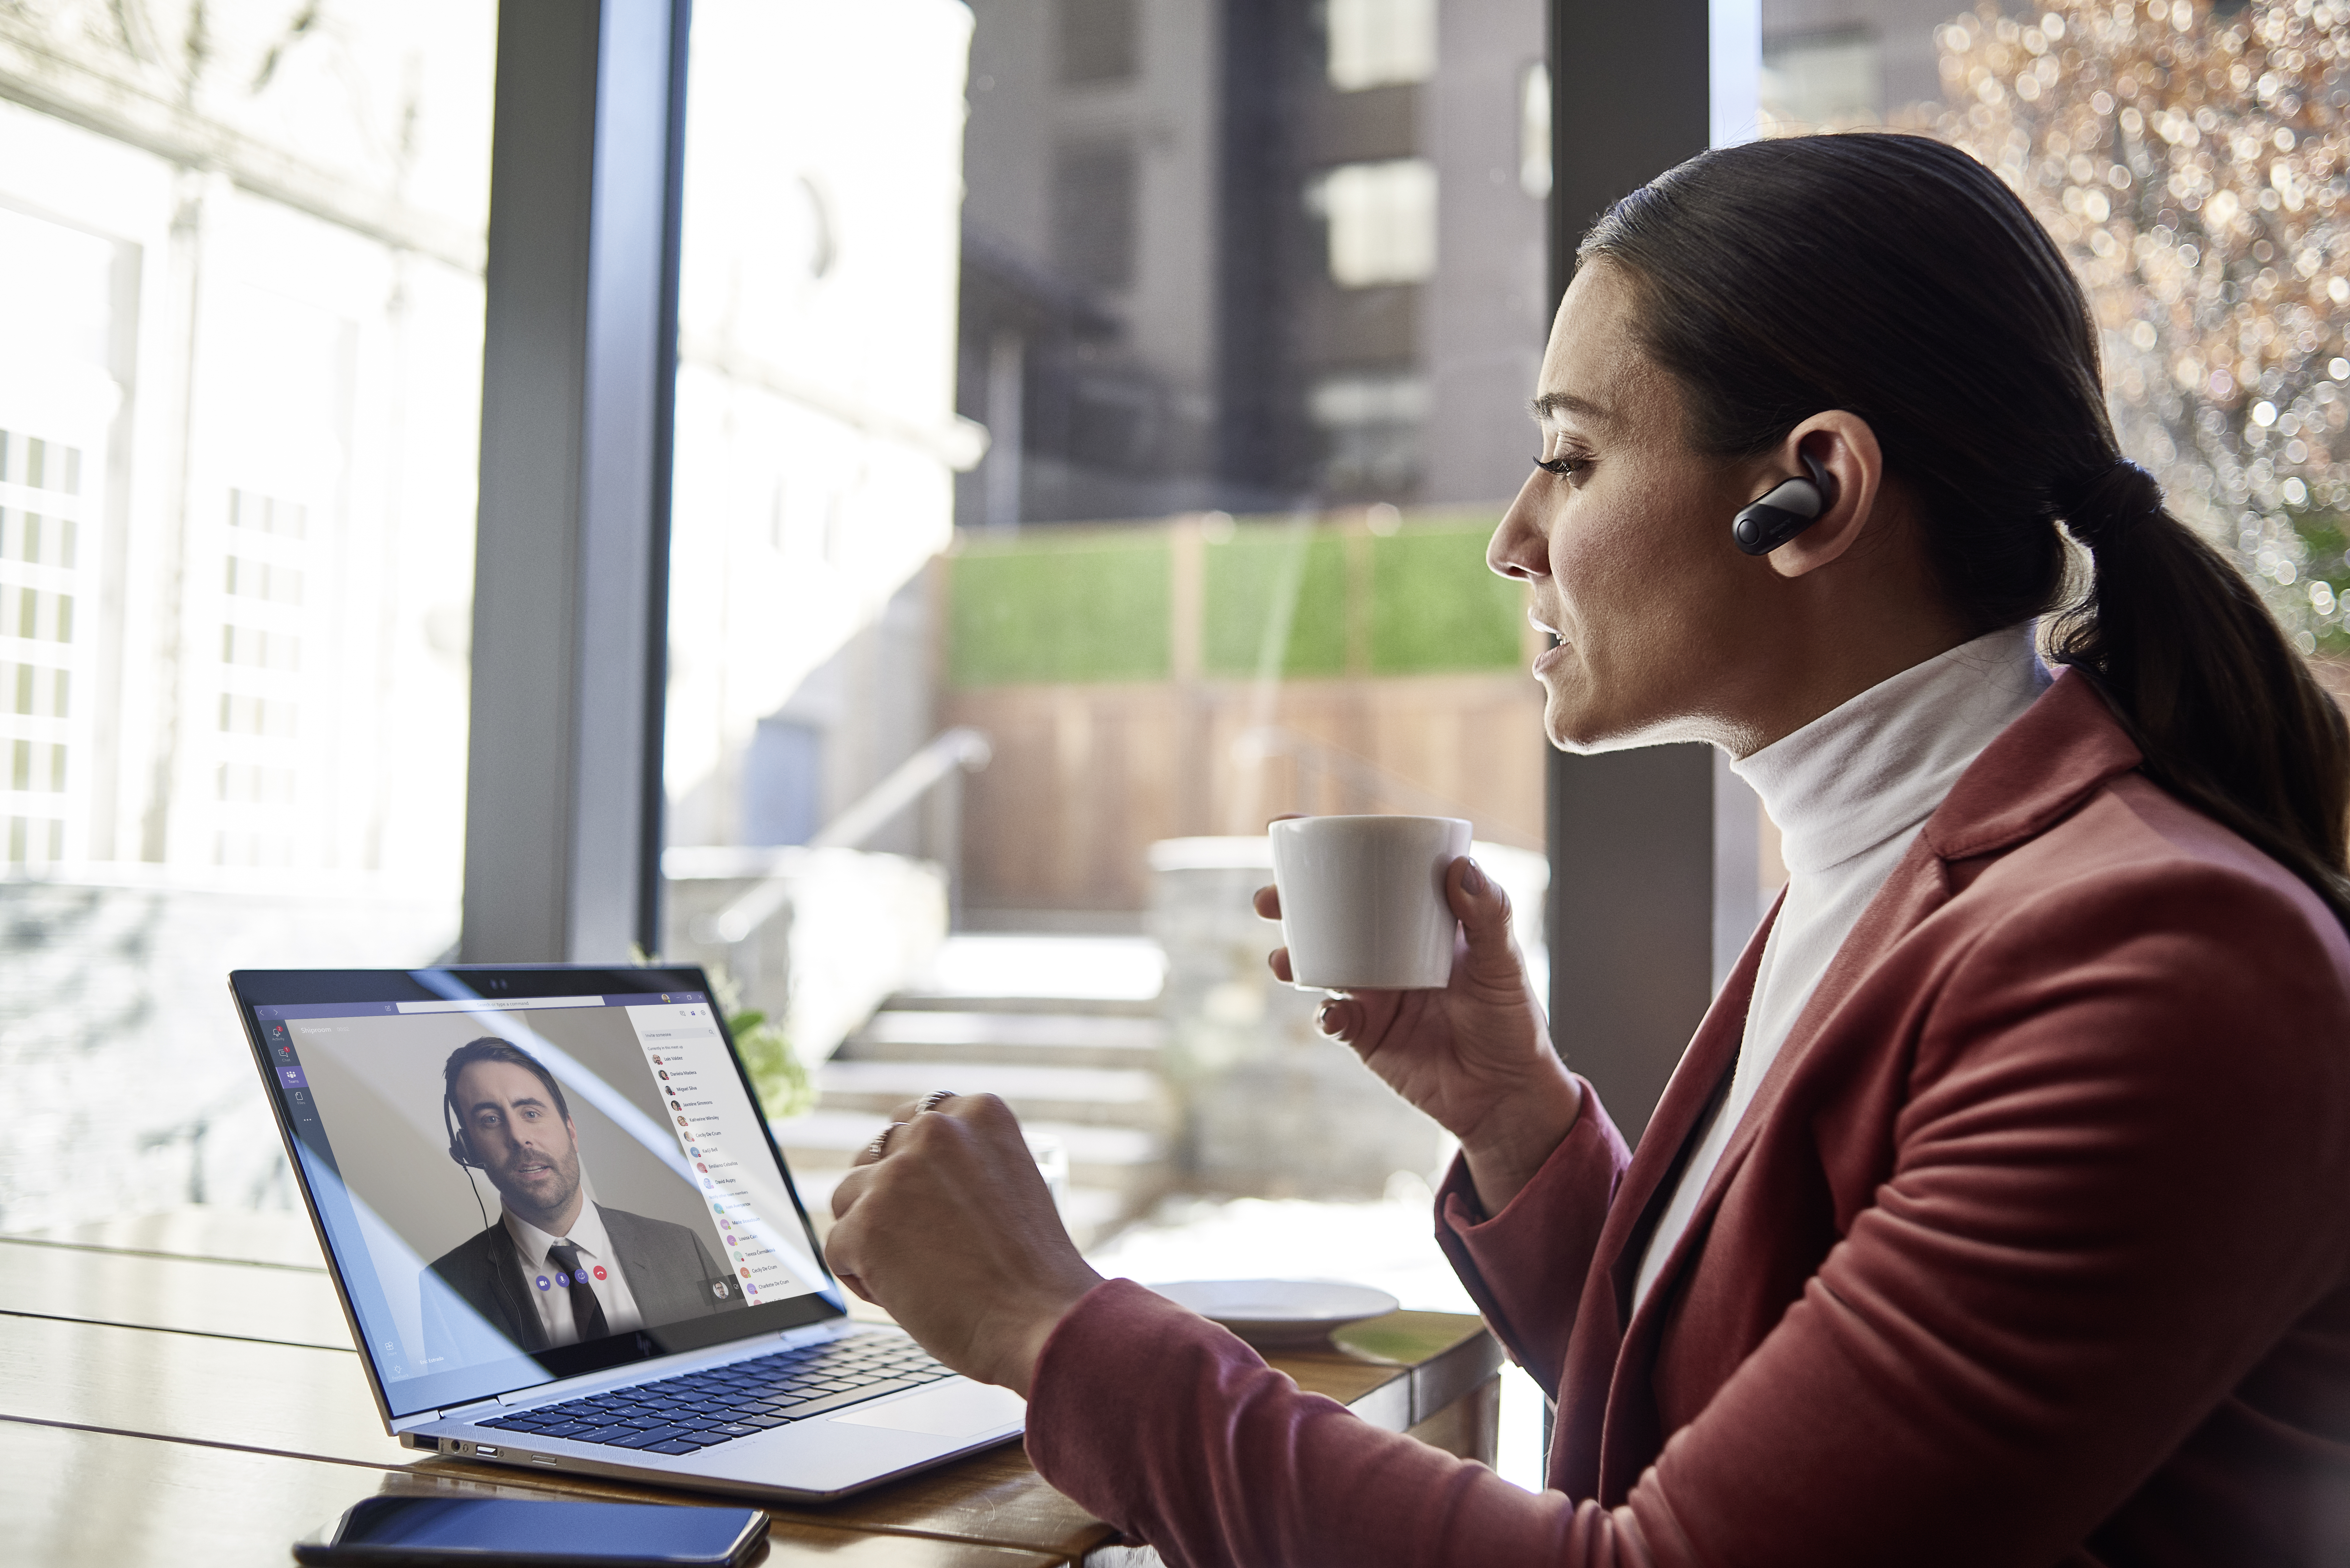 Image for: Female small business executive using HP Elite device running Microsoft Teams conference call. Different screens are available: one featuring 1 person on screen, another with 9 people on screen. Keywords: Microsoft Teams, Bluetooth, coffee.